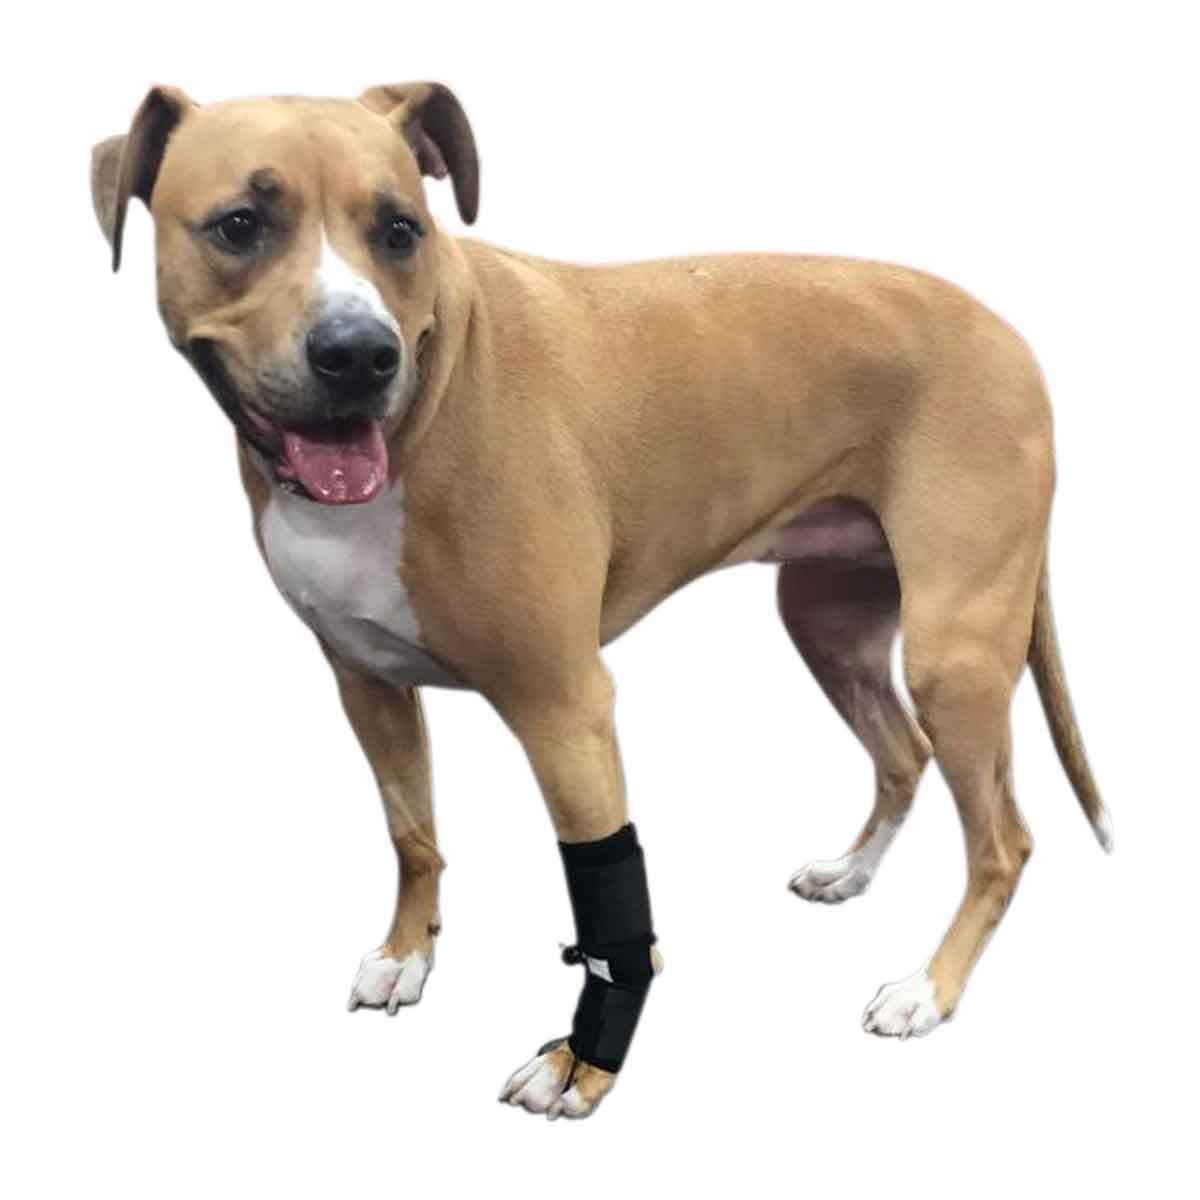 Walkin' Front No-Knuckling Training Sock Helps Dogs Pick up Their feet When knuckling Under or dragging Their Front Paws